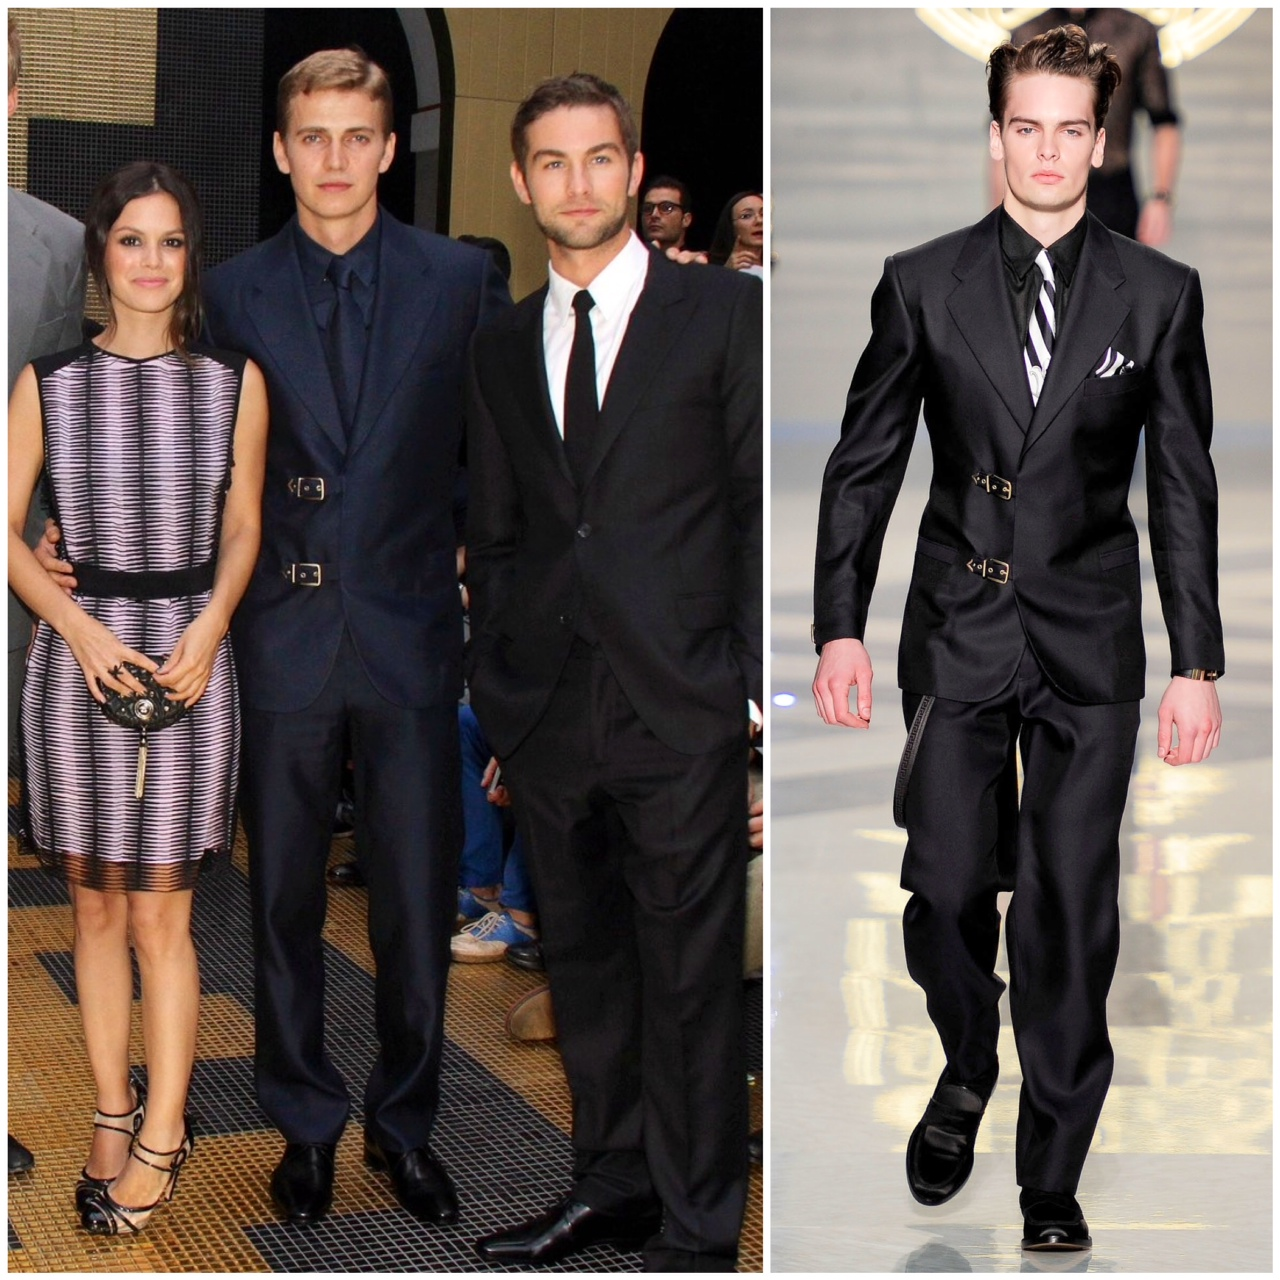 00o00 menswear blog London milan fashion week Versace SS2013 Spring 2013 Hayden Christensen Chace Crawford